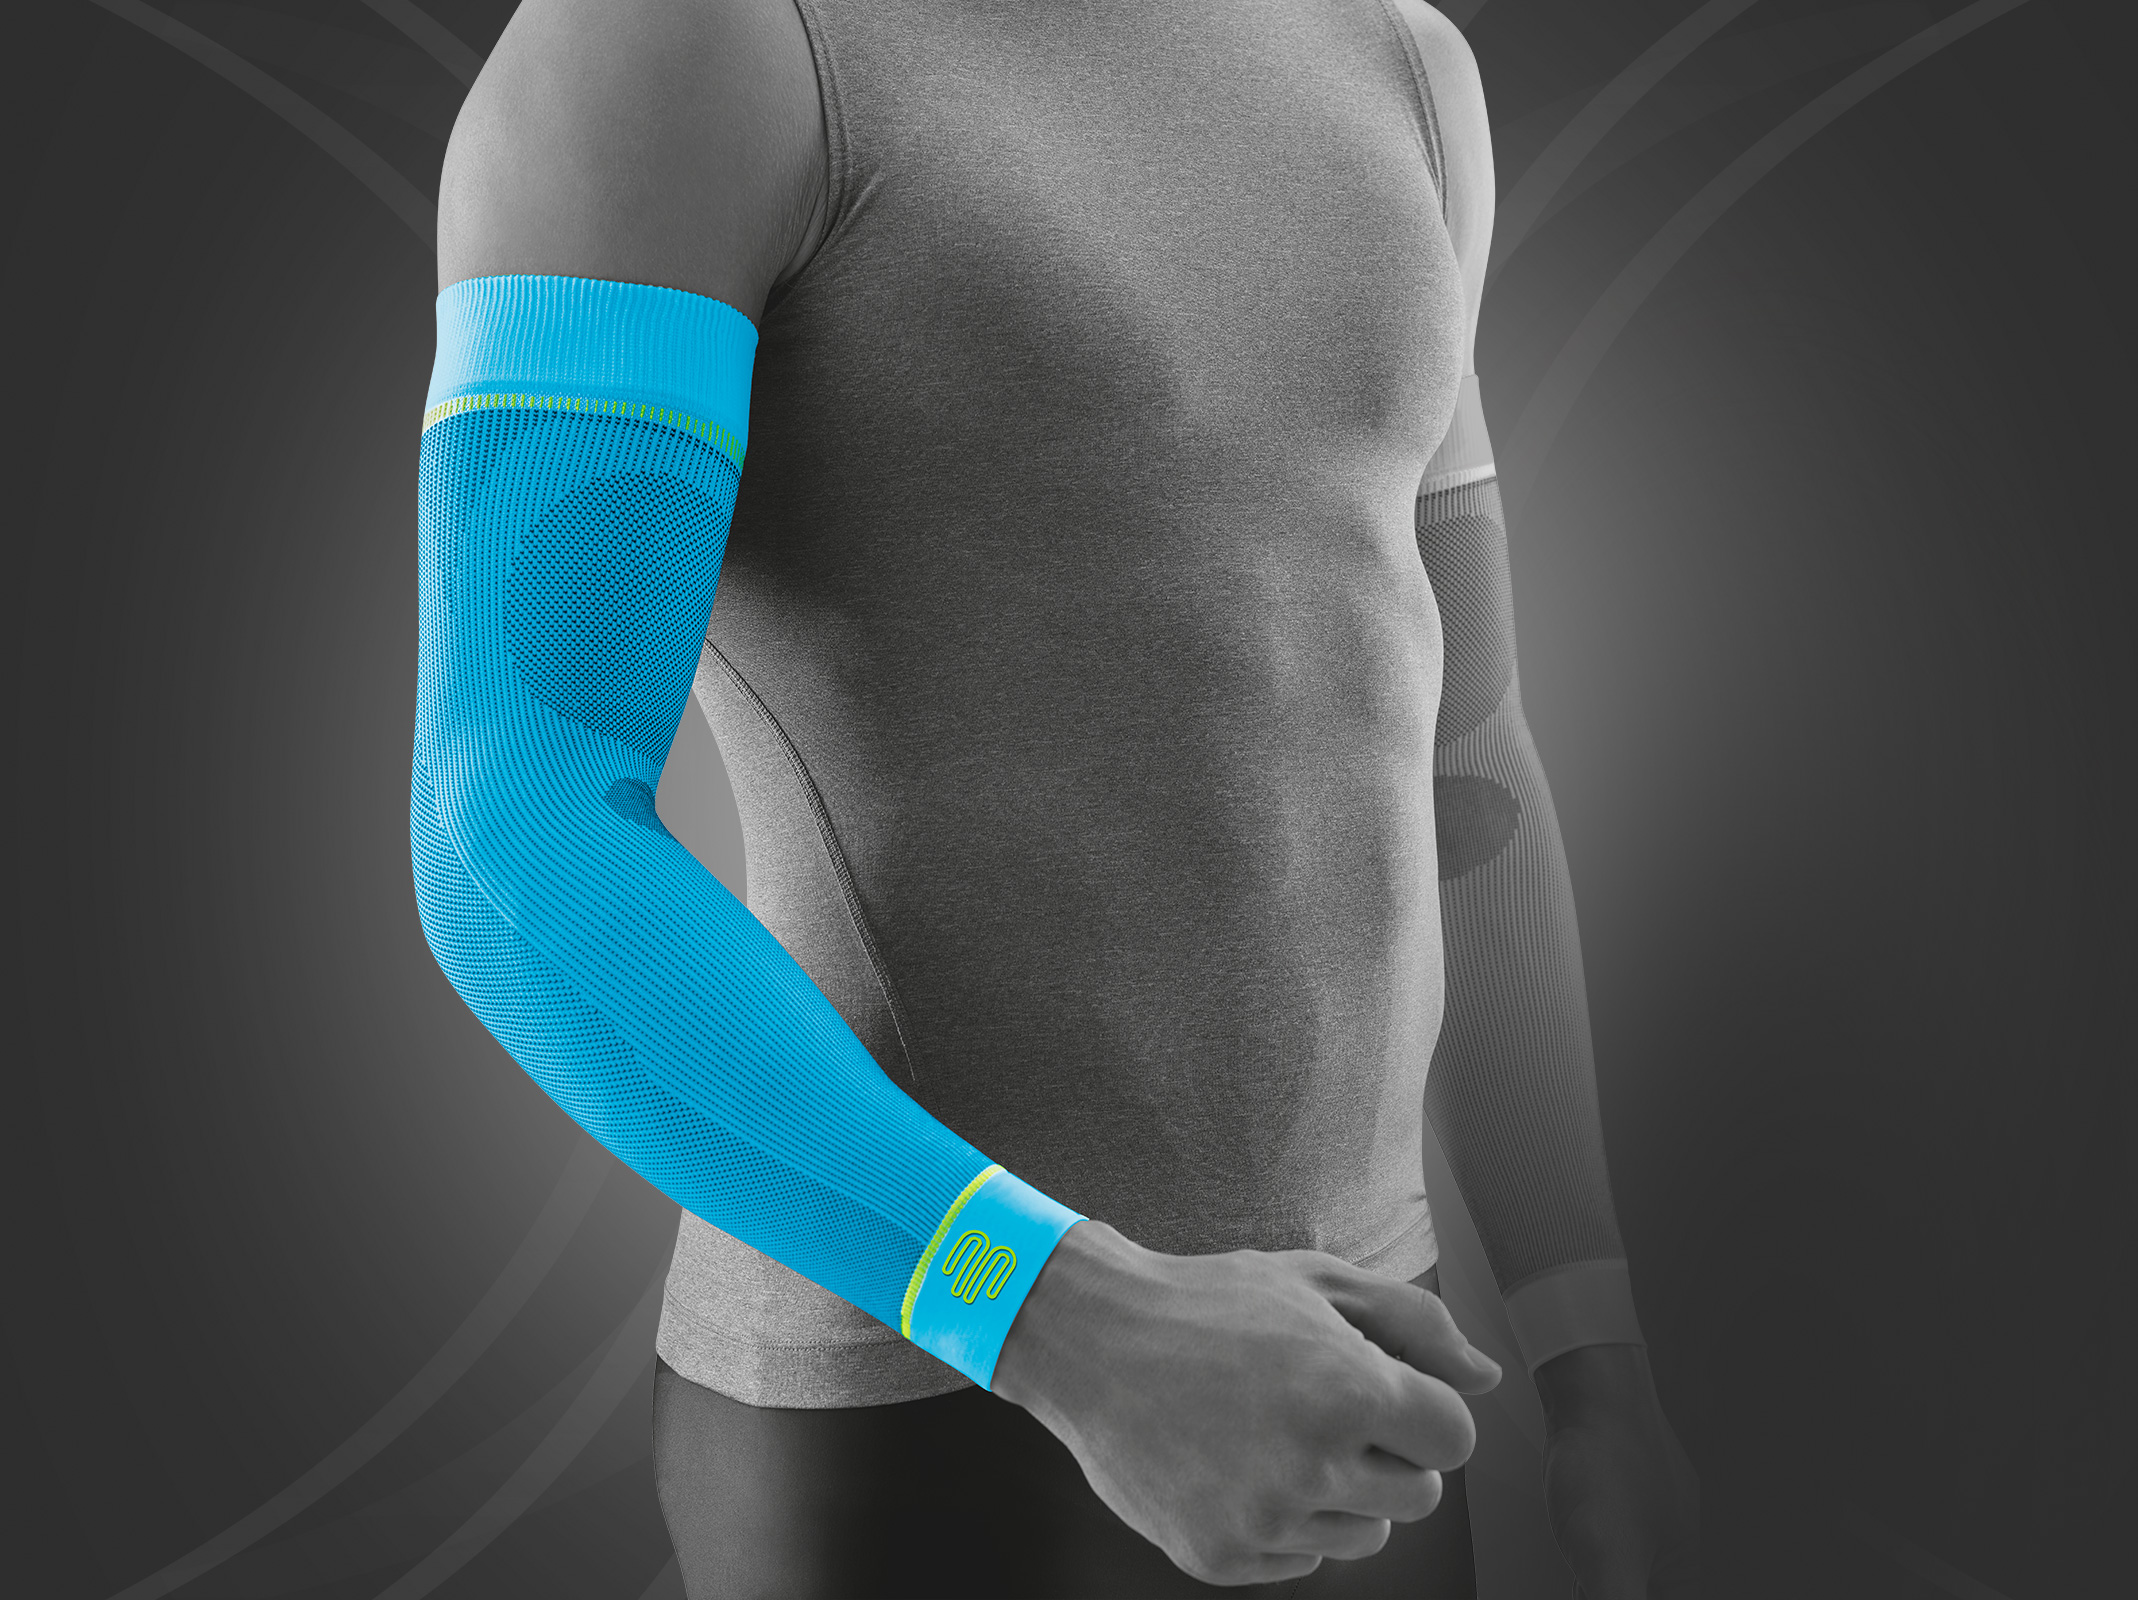 How wear to long arm compression sleeves